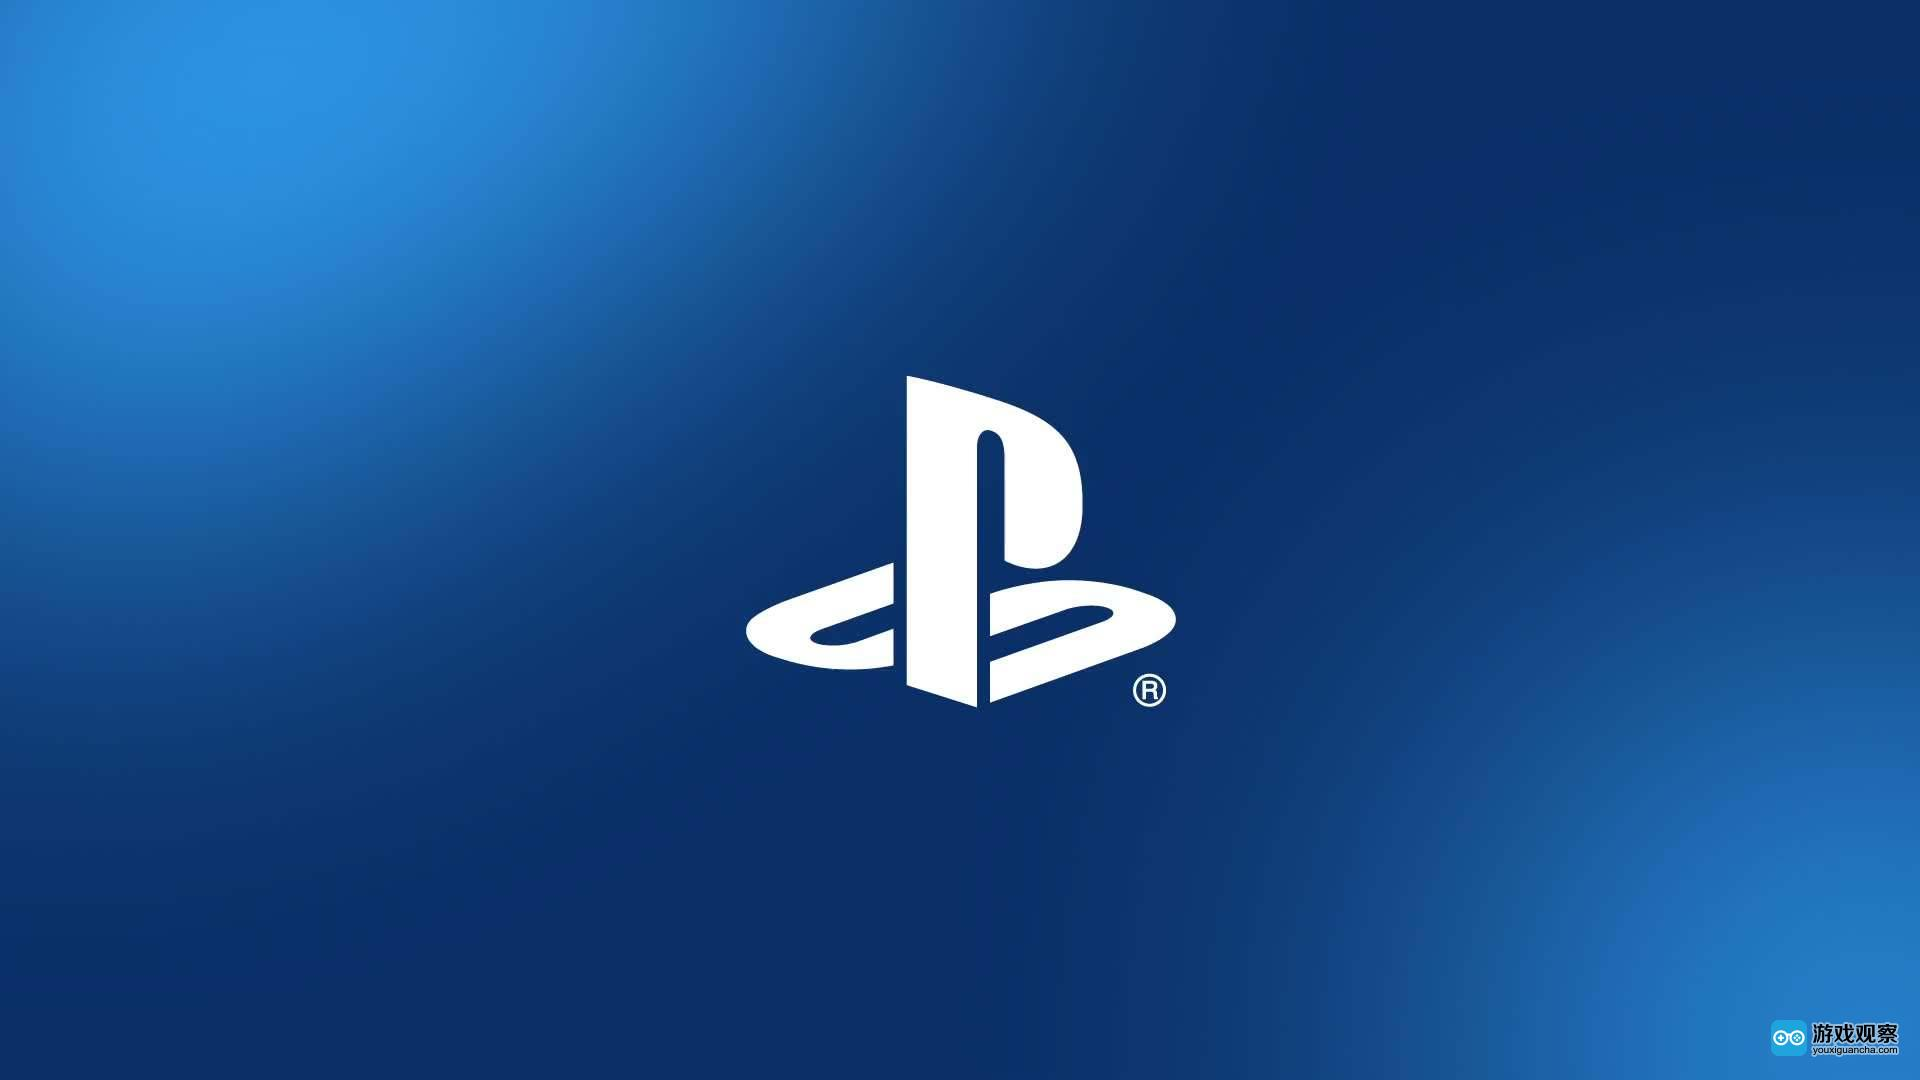 PlayStation成英国最被认可第三大品牌 排名超越谷歌